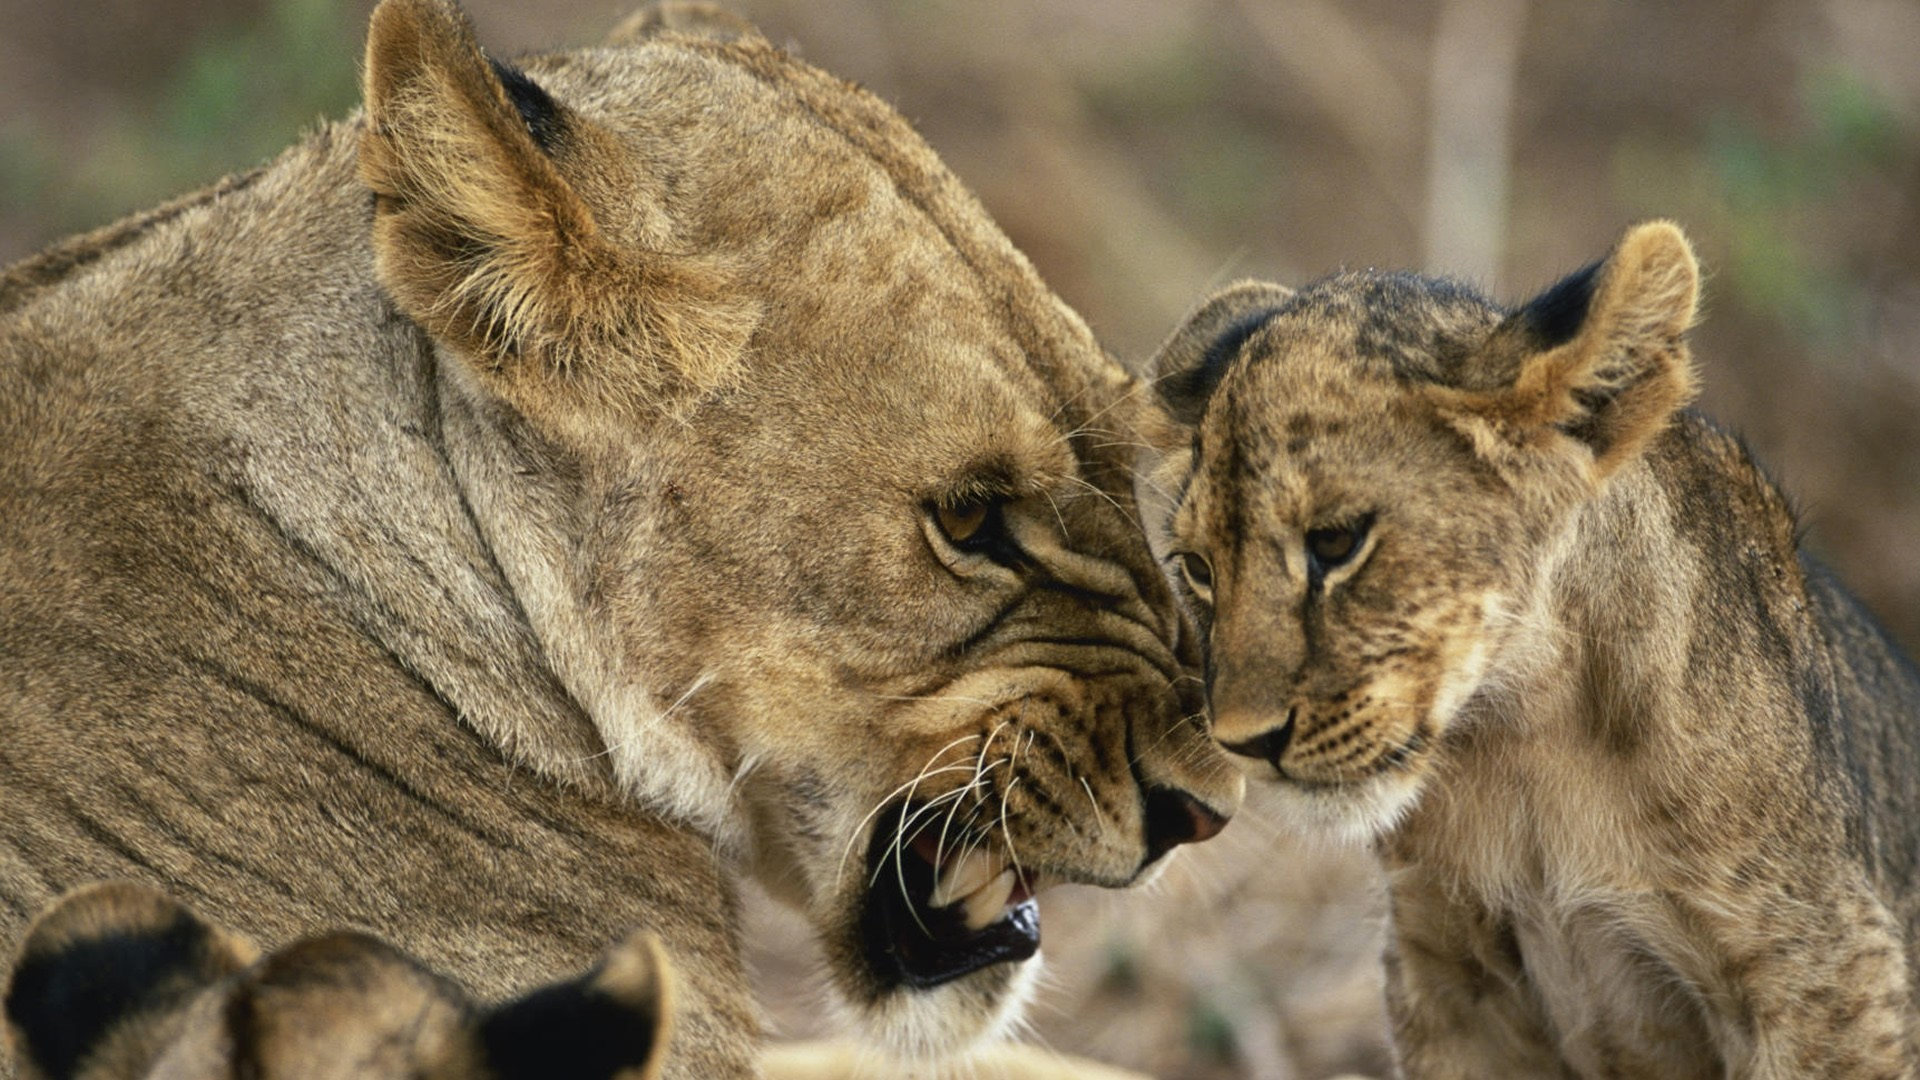 Animals cubs Lions baby HD Wallpaper